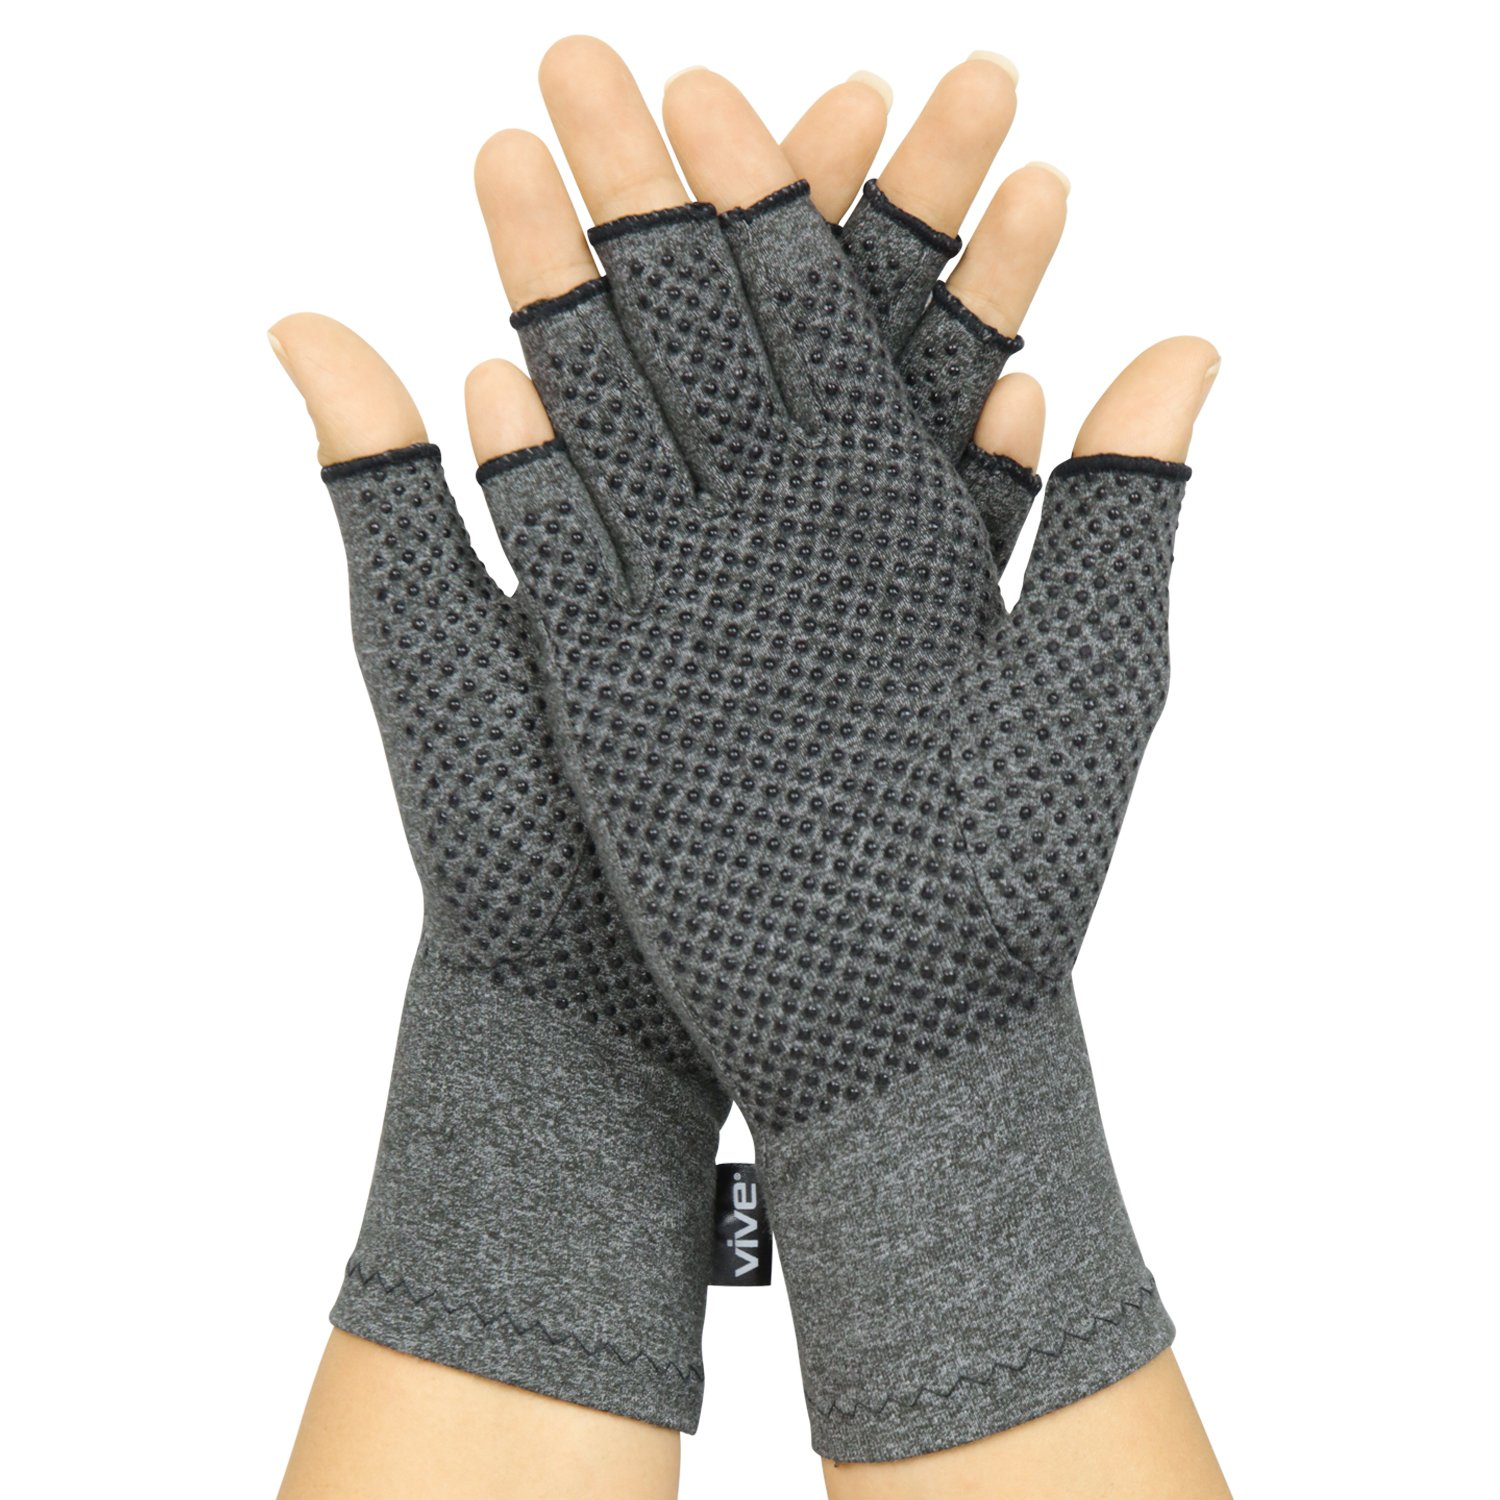 Arthritis Gloves with Grips by Vive - Textured Open Finger Compression Hand Gloves for Rheumatoid and Osteoarthritis - Joint Pain Relief for Men & Women (Medium)